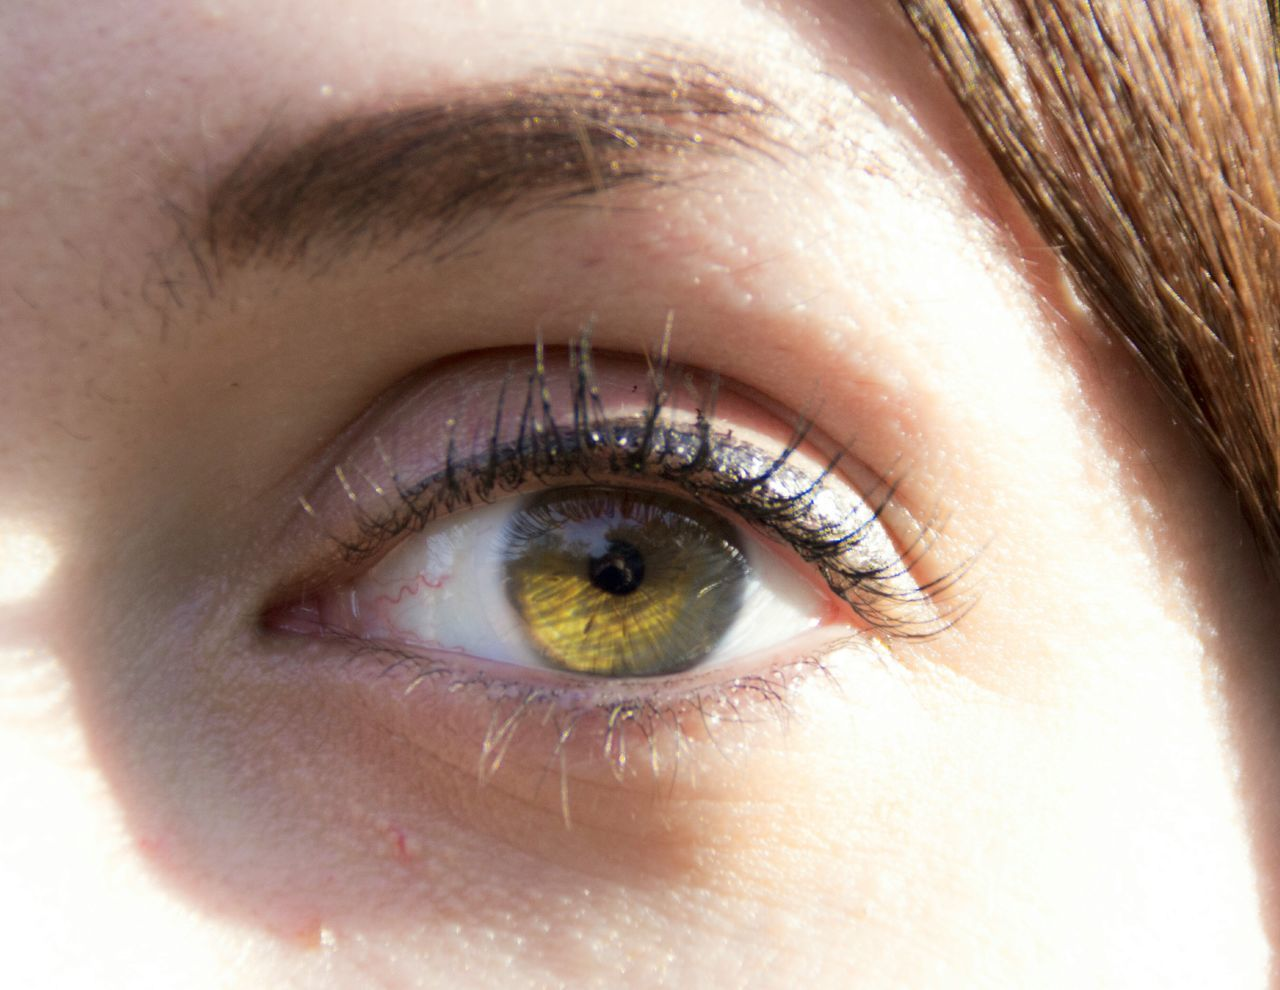 human eye, eyelash, looking at camera, eyesight, human body part, eyeball, close-up, one person, portrait, iris - eye, real people, eyebrow, sensory perception, outdoors, day, hazel eyes, adult, people